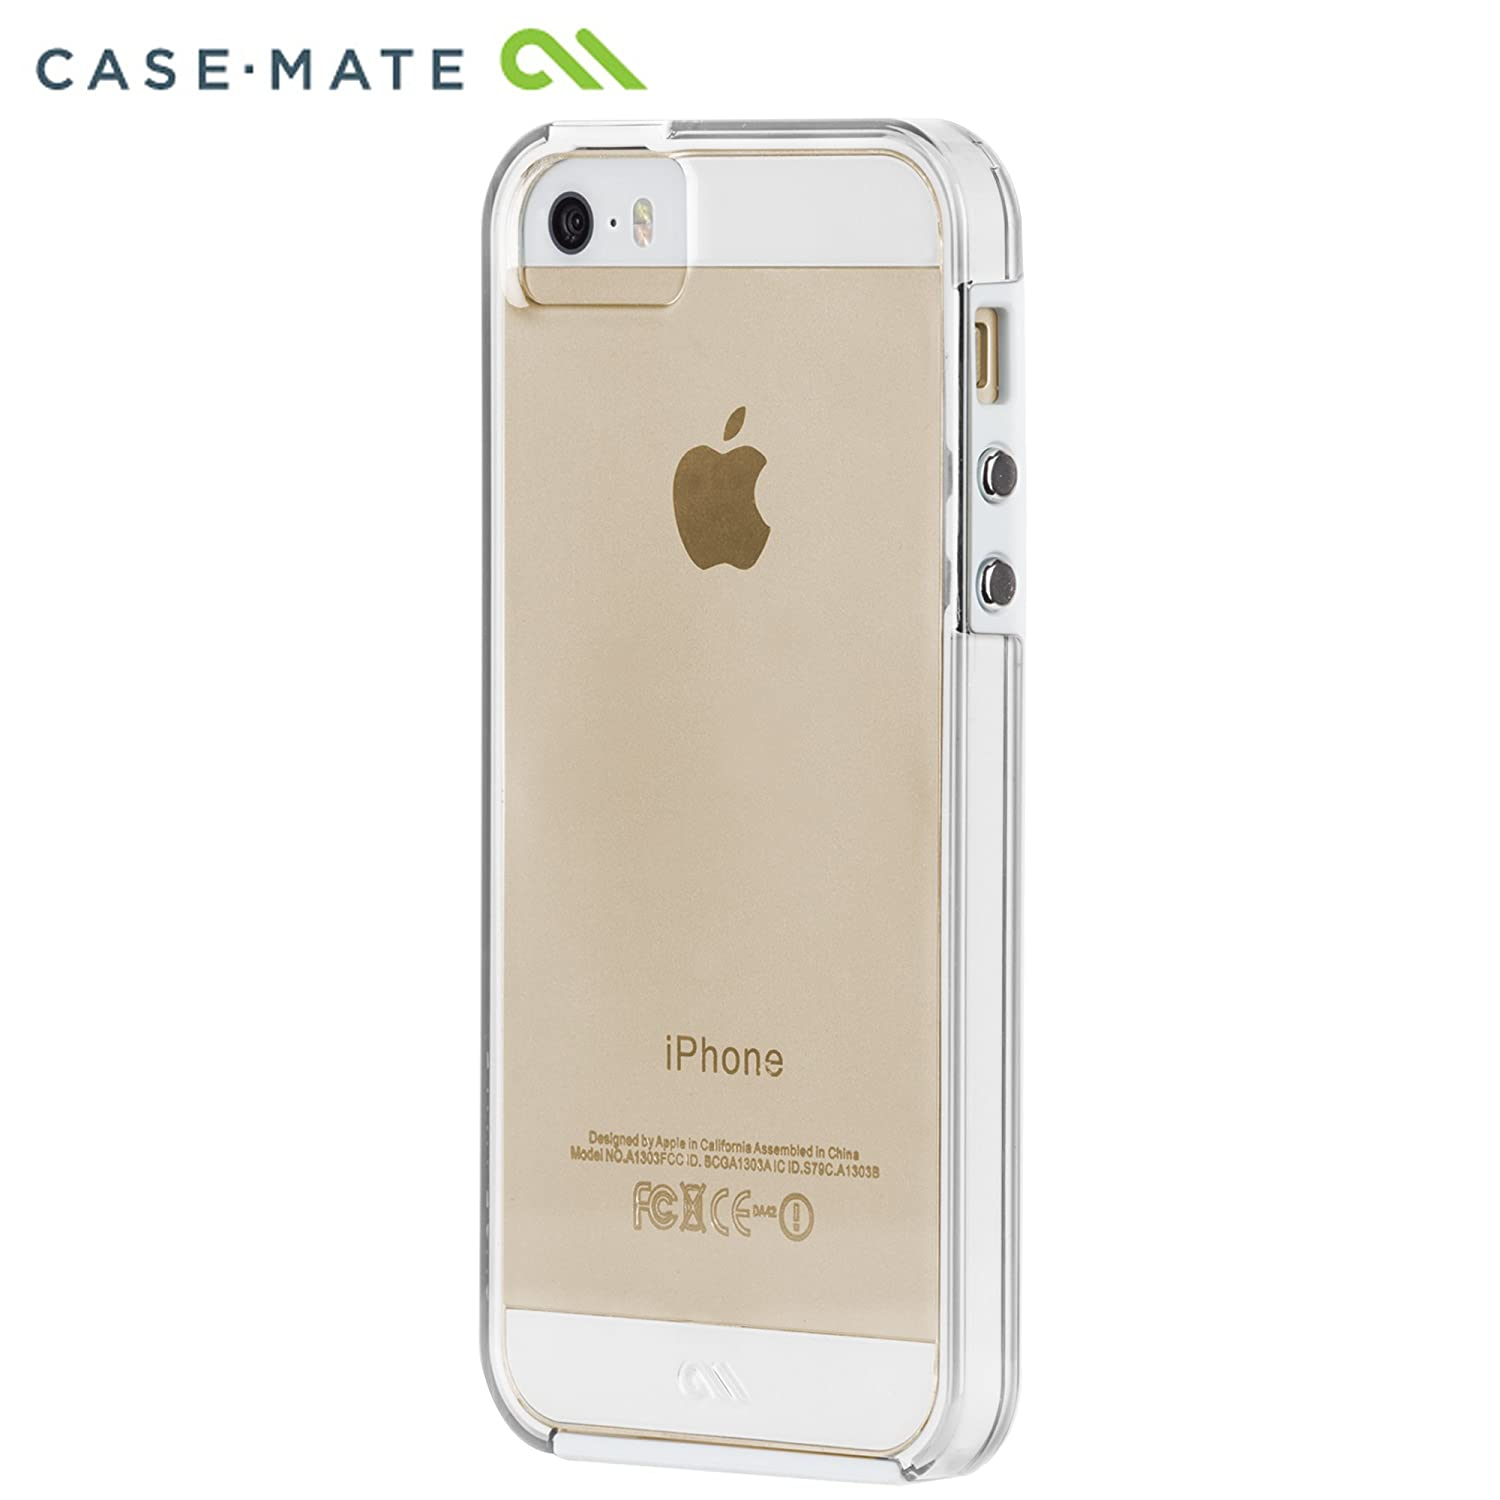 Medical research and corporate technology case mate iphone 4 case - Amazon Com Case Mate Naked Tough Case For Iphone 5 5s Clear White Bumper Cell Phones Accessories